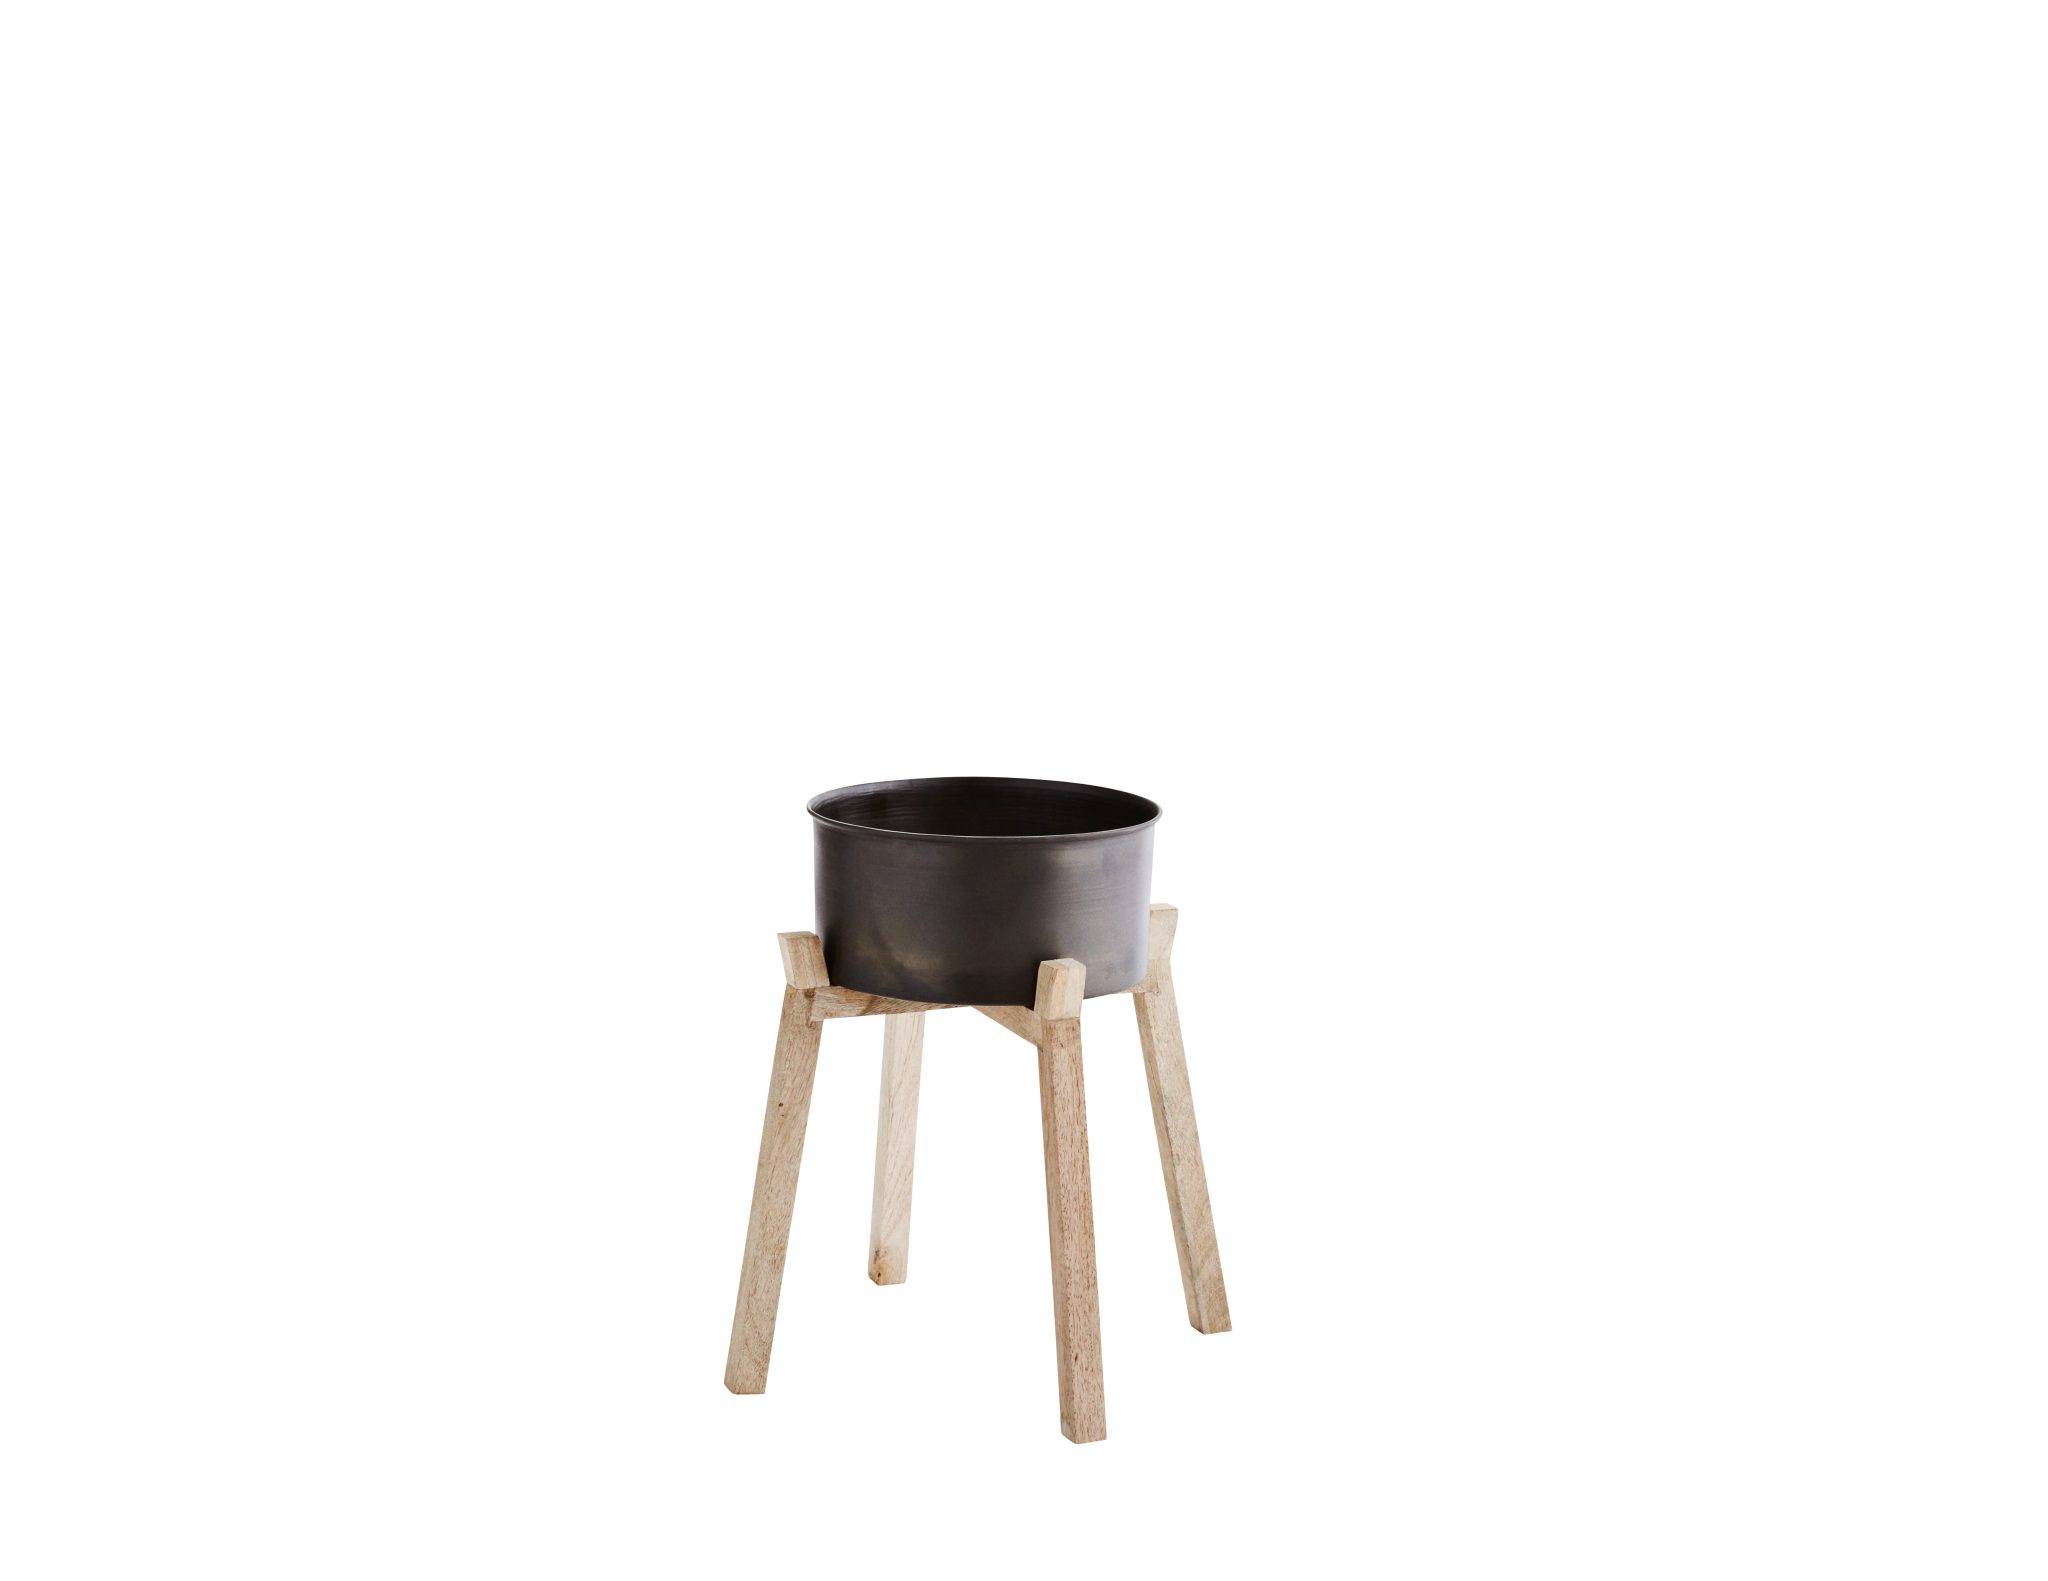 cache pot en m tal sur pieds en bois deko de l 39 eau. Black Bedroom Furniture Sets. Home Design Ideas